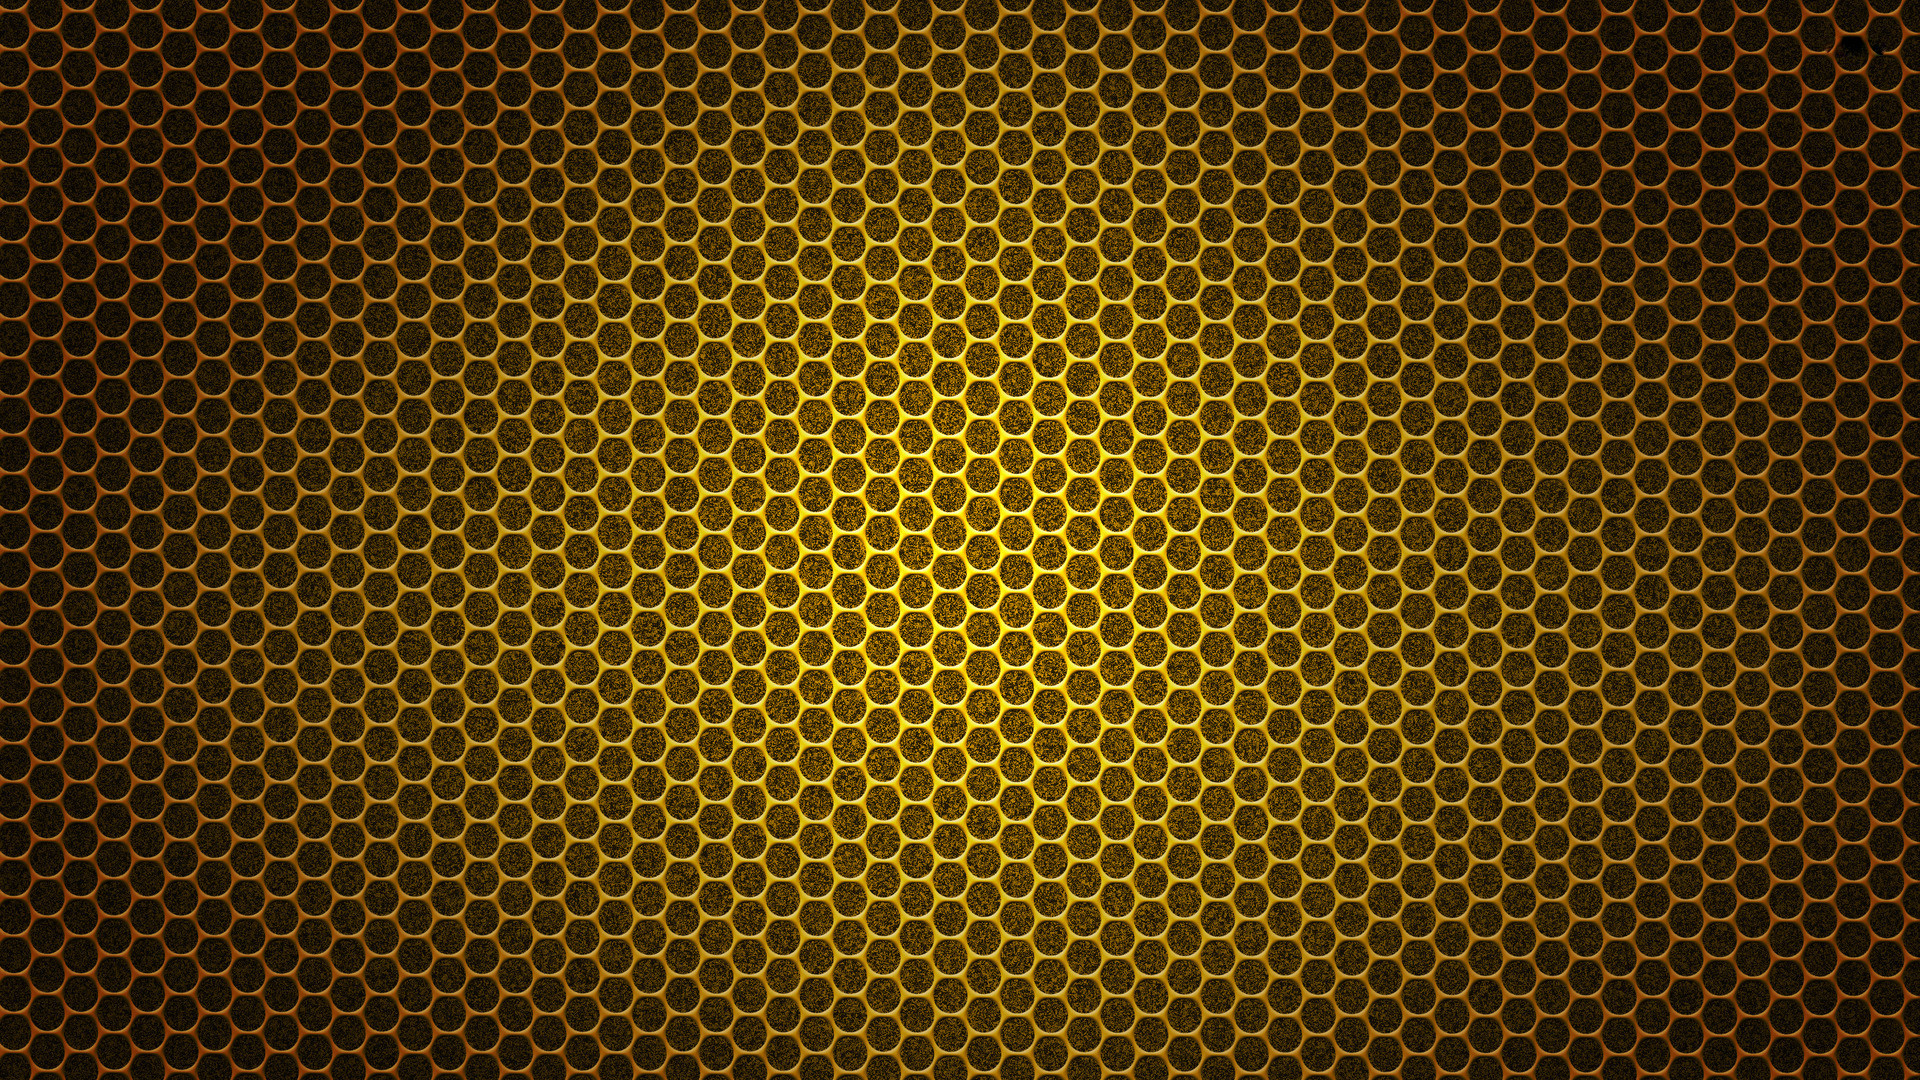 1920x1080 Gold-pattern-desktop-background-wallpapers-001